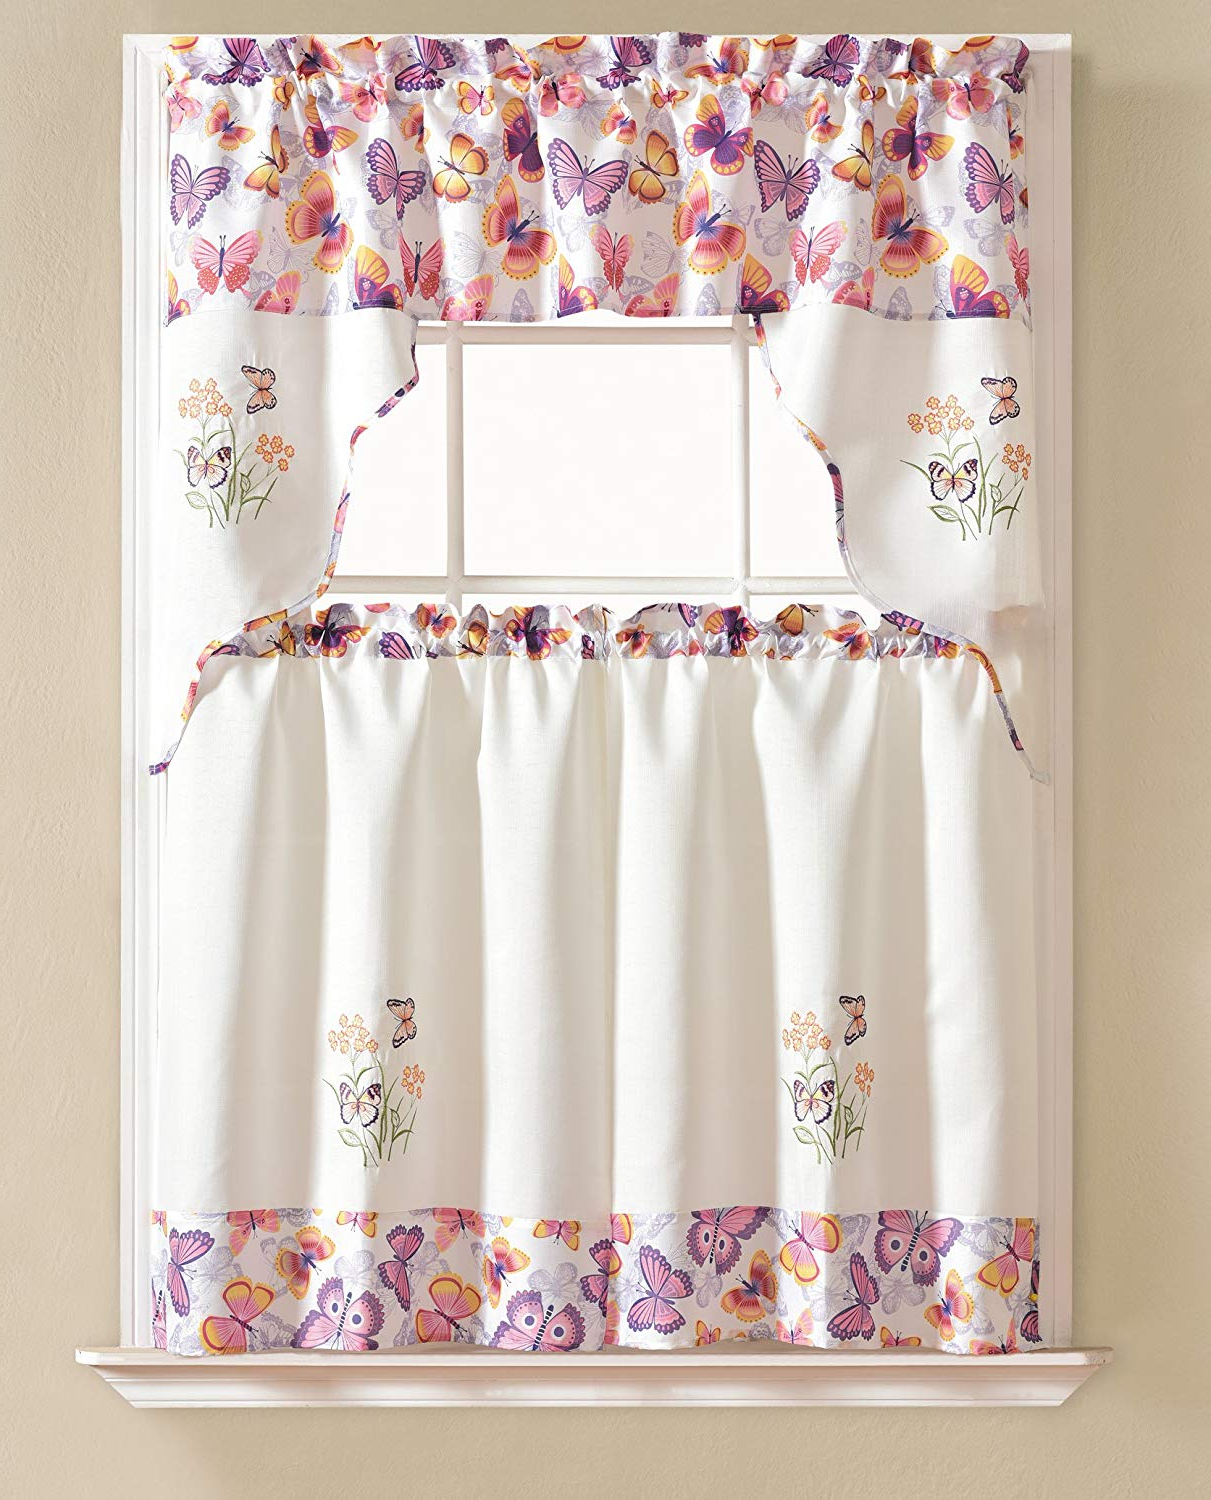 Urban Embroidered Tier And Valance Kitchen Curtain Tier Sets Within Current Rt Designers Collection Urban Embroidered Tier And Valance Kitchen Curtain Set, Butterfly (View 4 of 20)